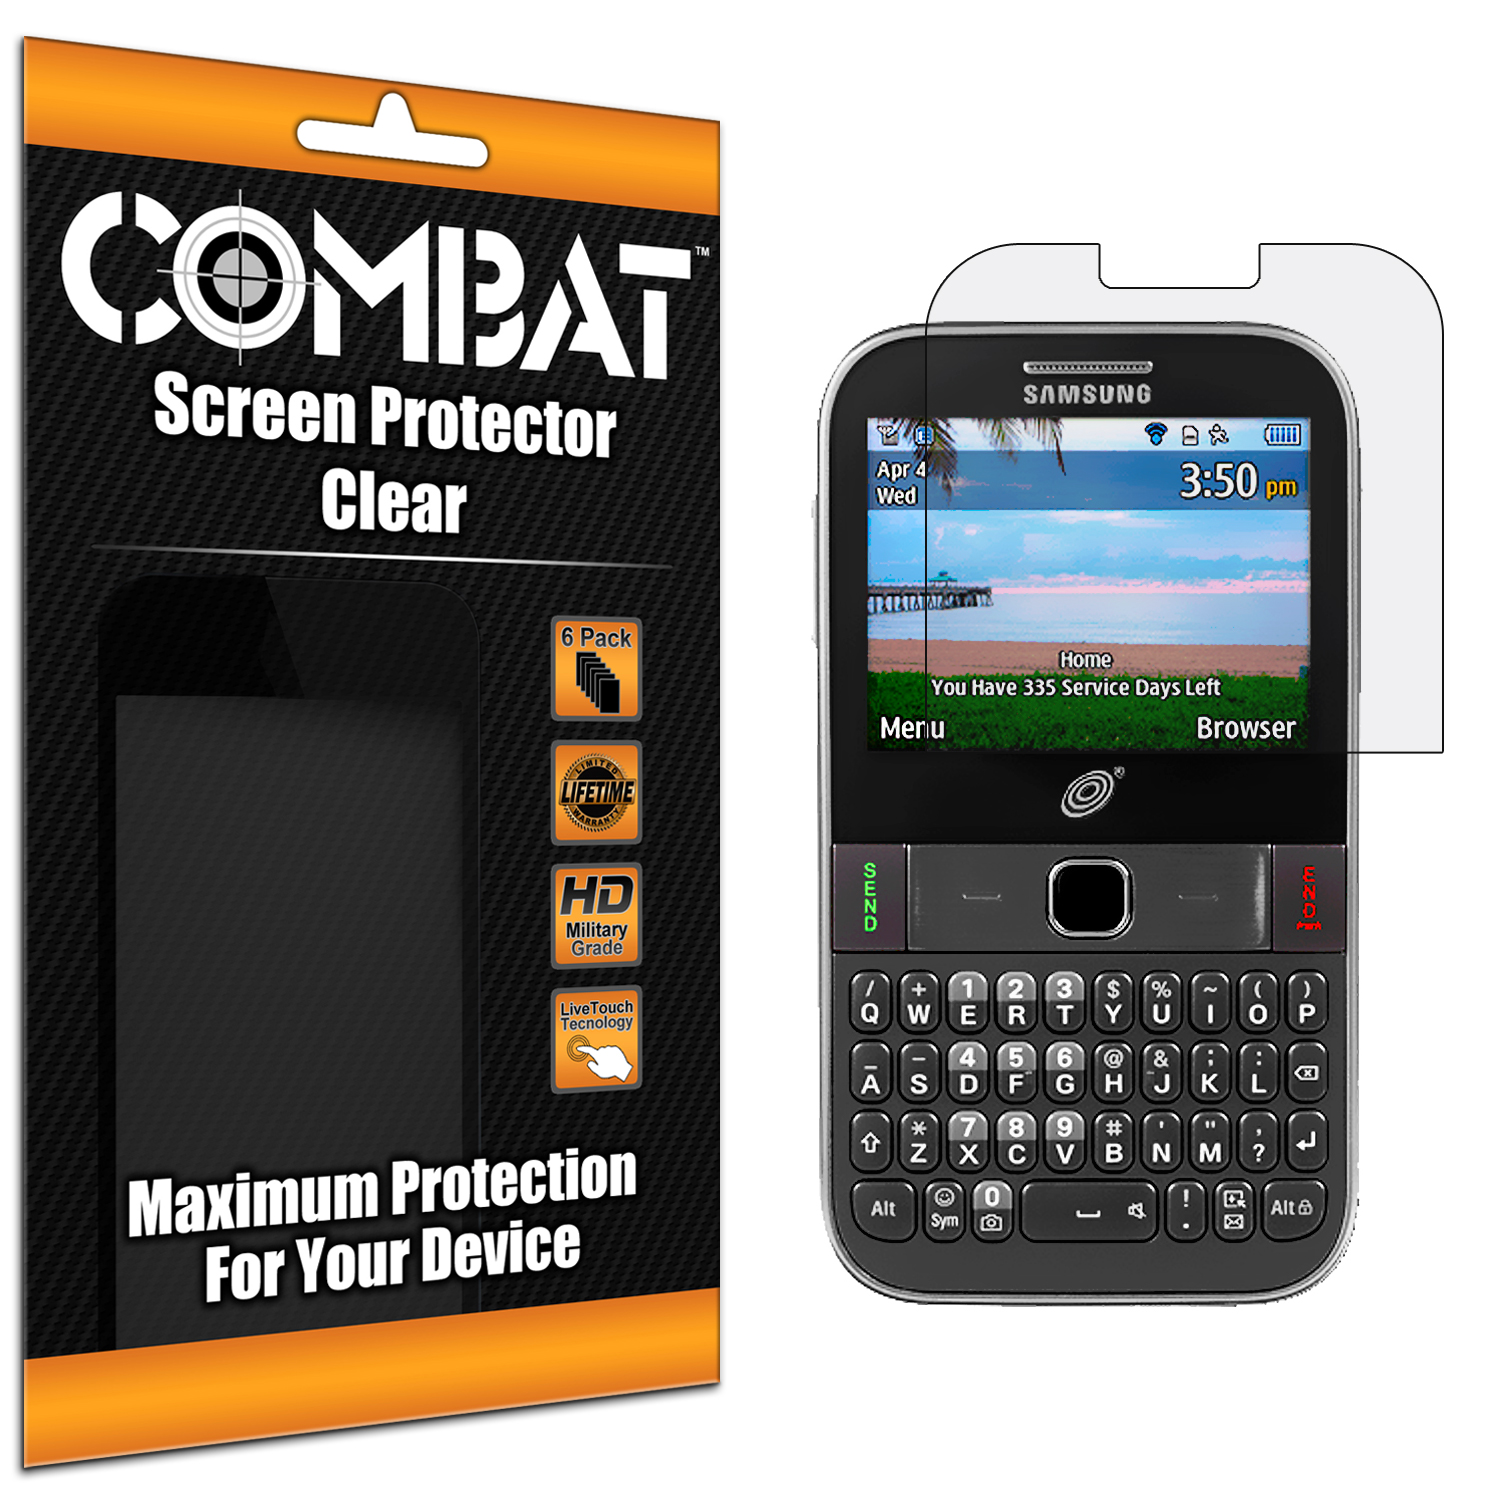 Samsung Freeform M S390G Combat 6 Pack HD Clear Screen Protector